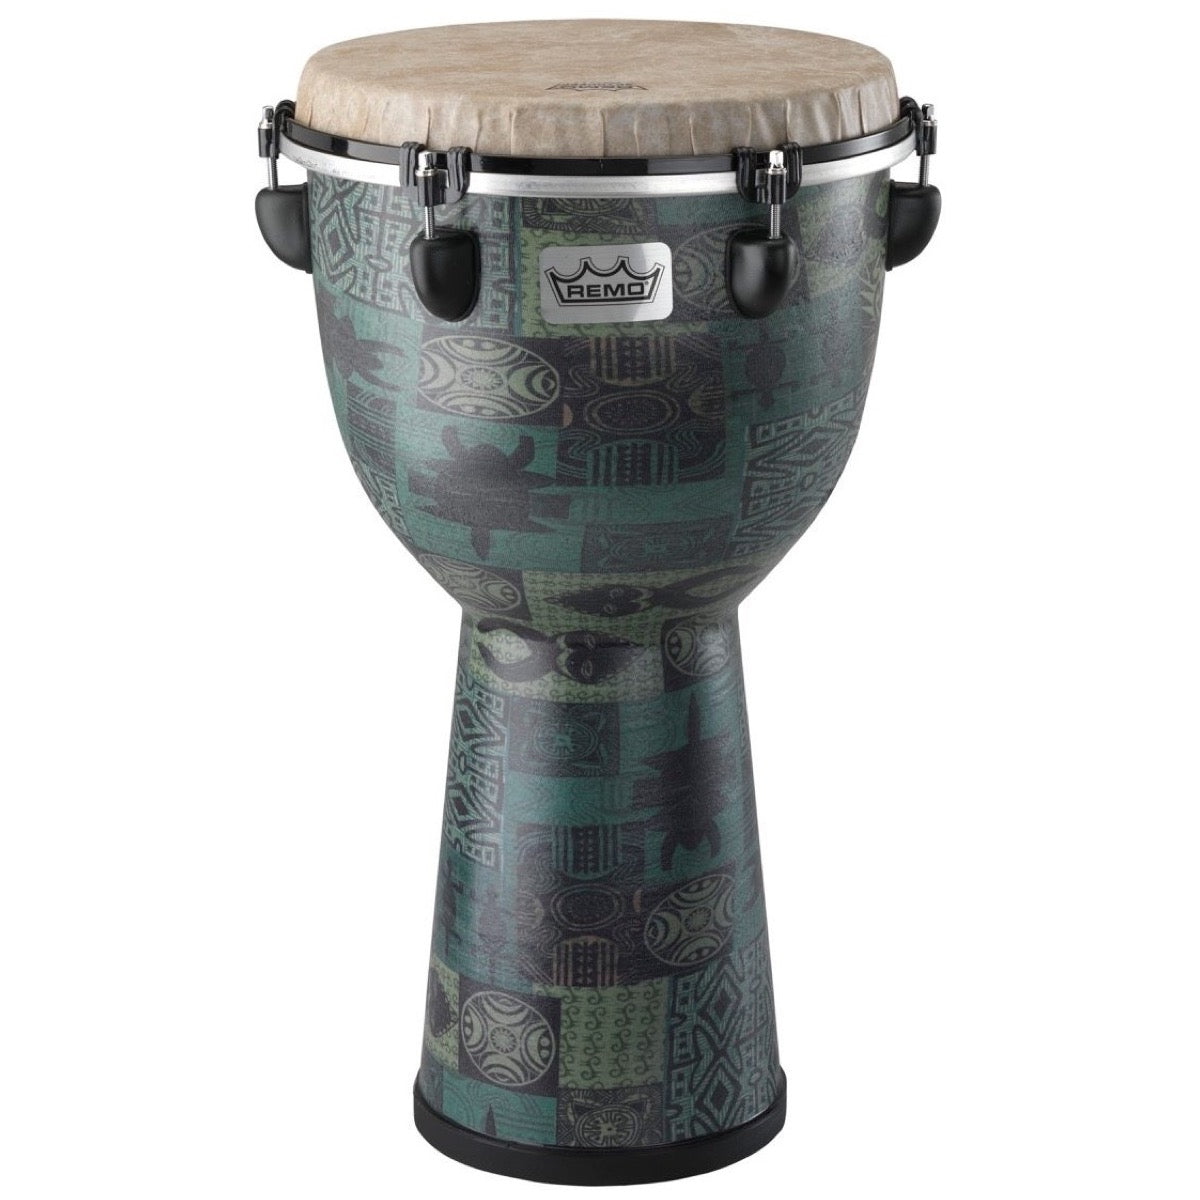 Remo Apex Djembe Drum, Green, 12 Inch